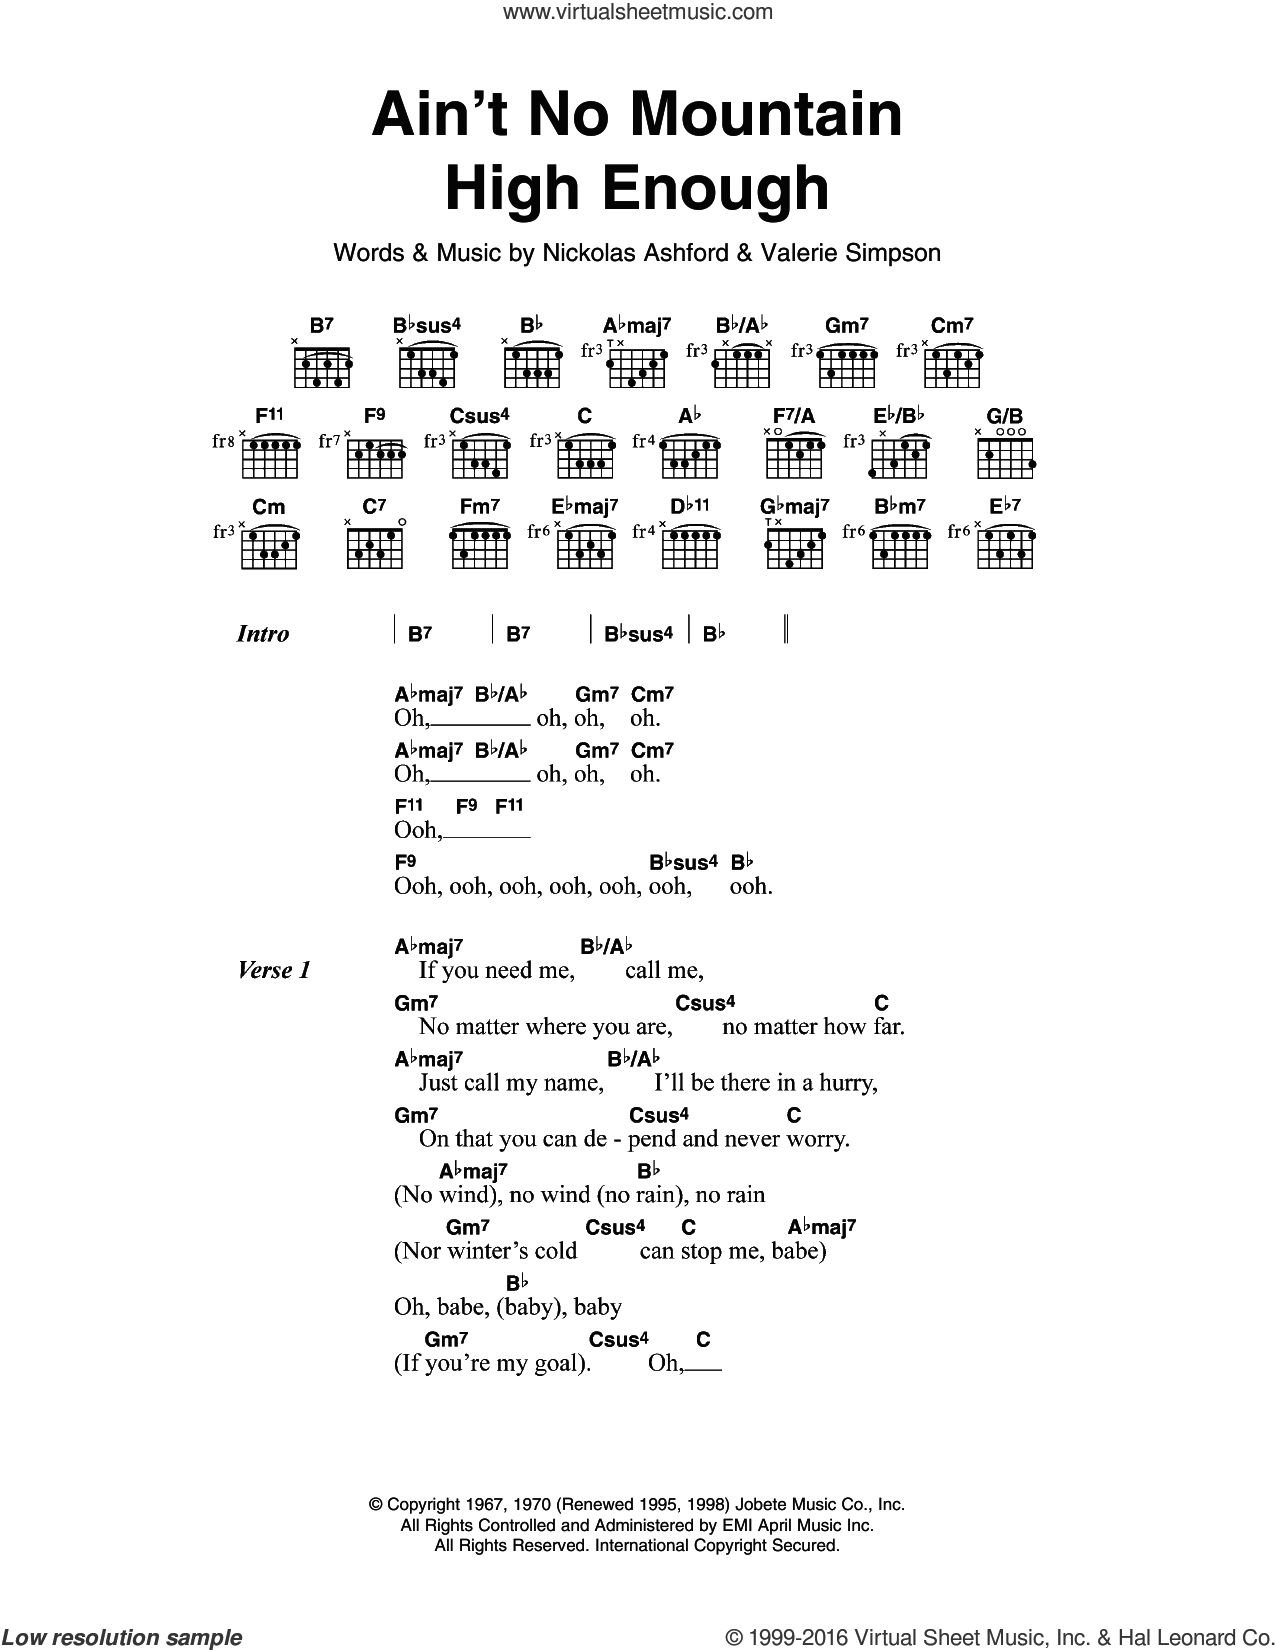 Ross Aint No Mountain High Enough Sheet Music For Guitar Chords